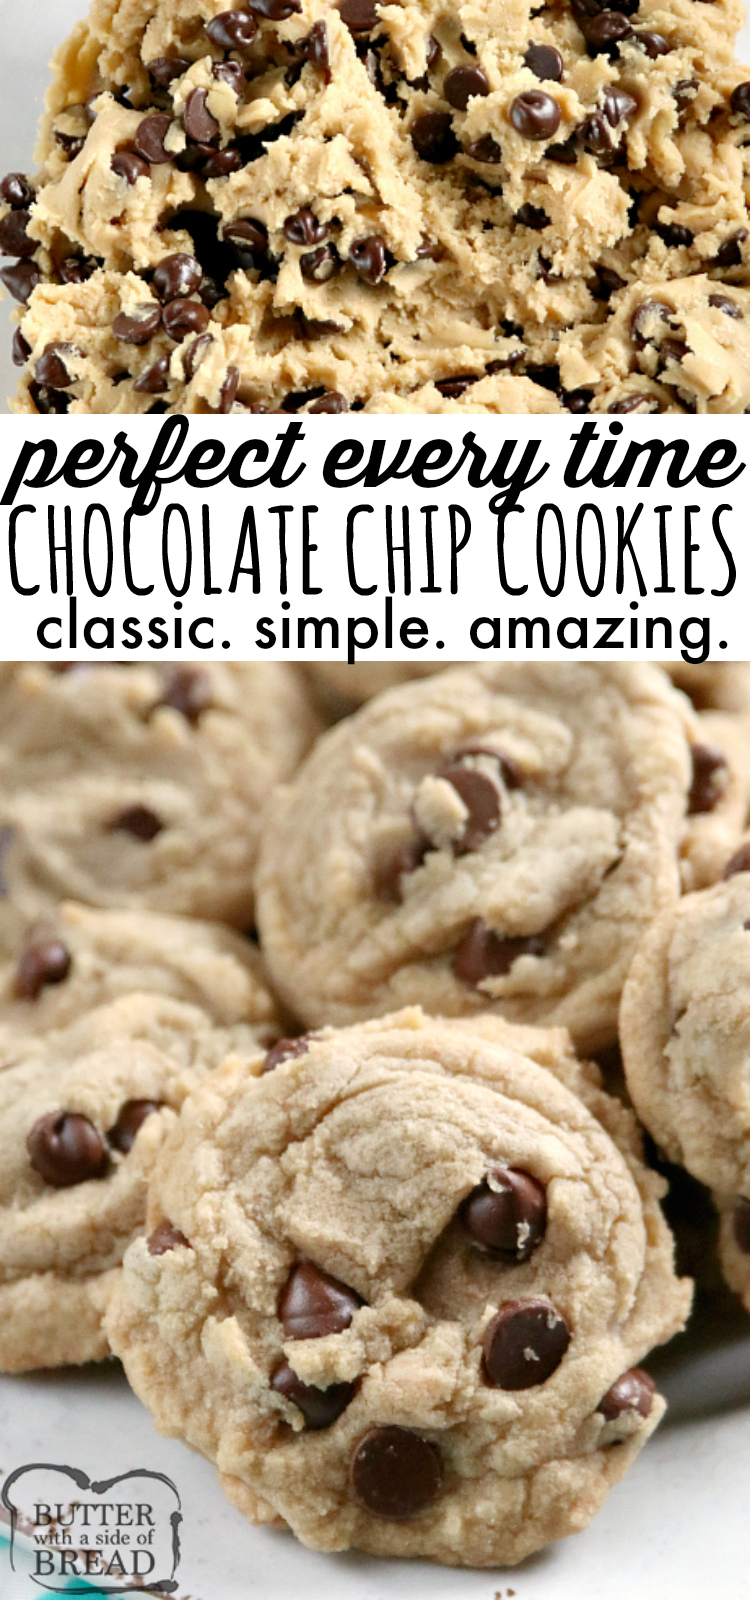 Chocolate Chip Cookies that are soft, loaded with chocolate chips and turn out perfectly every time! This easy chocolate chip cookie recipe is made with butter (no shortening) and other basic ingredients and no chilling is required.